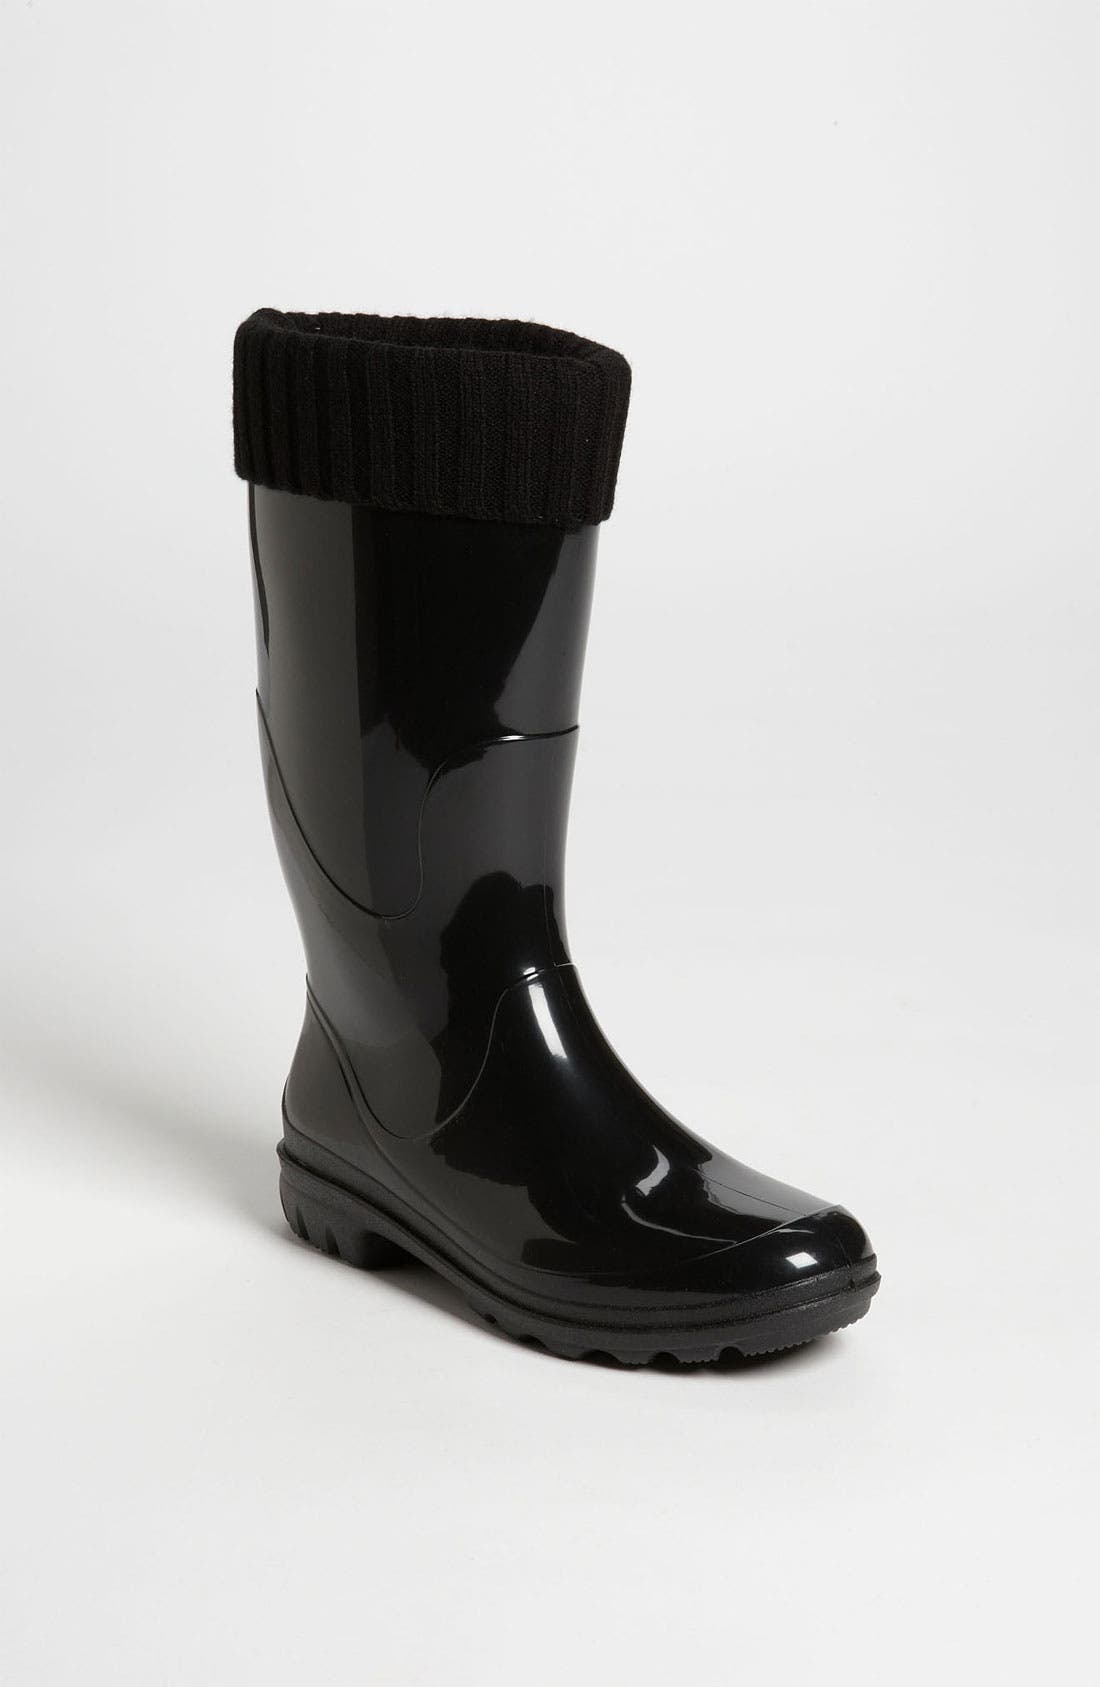 Alternate Image 1 Selected - Kamik 'Kelly' Rain Boot (Women) (Online Only)